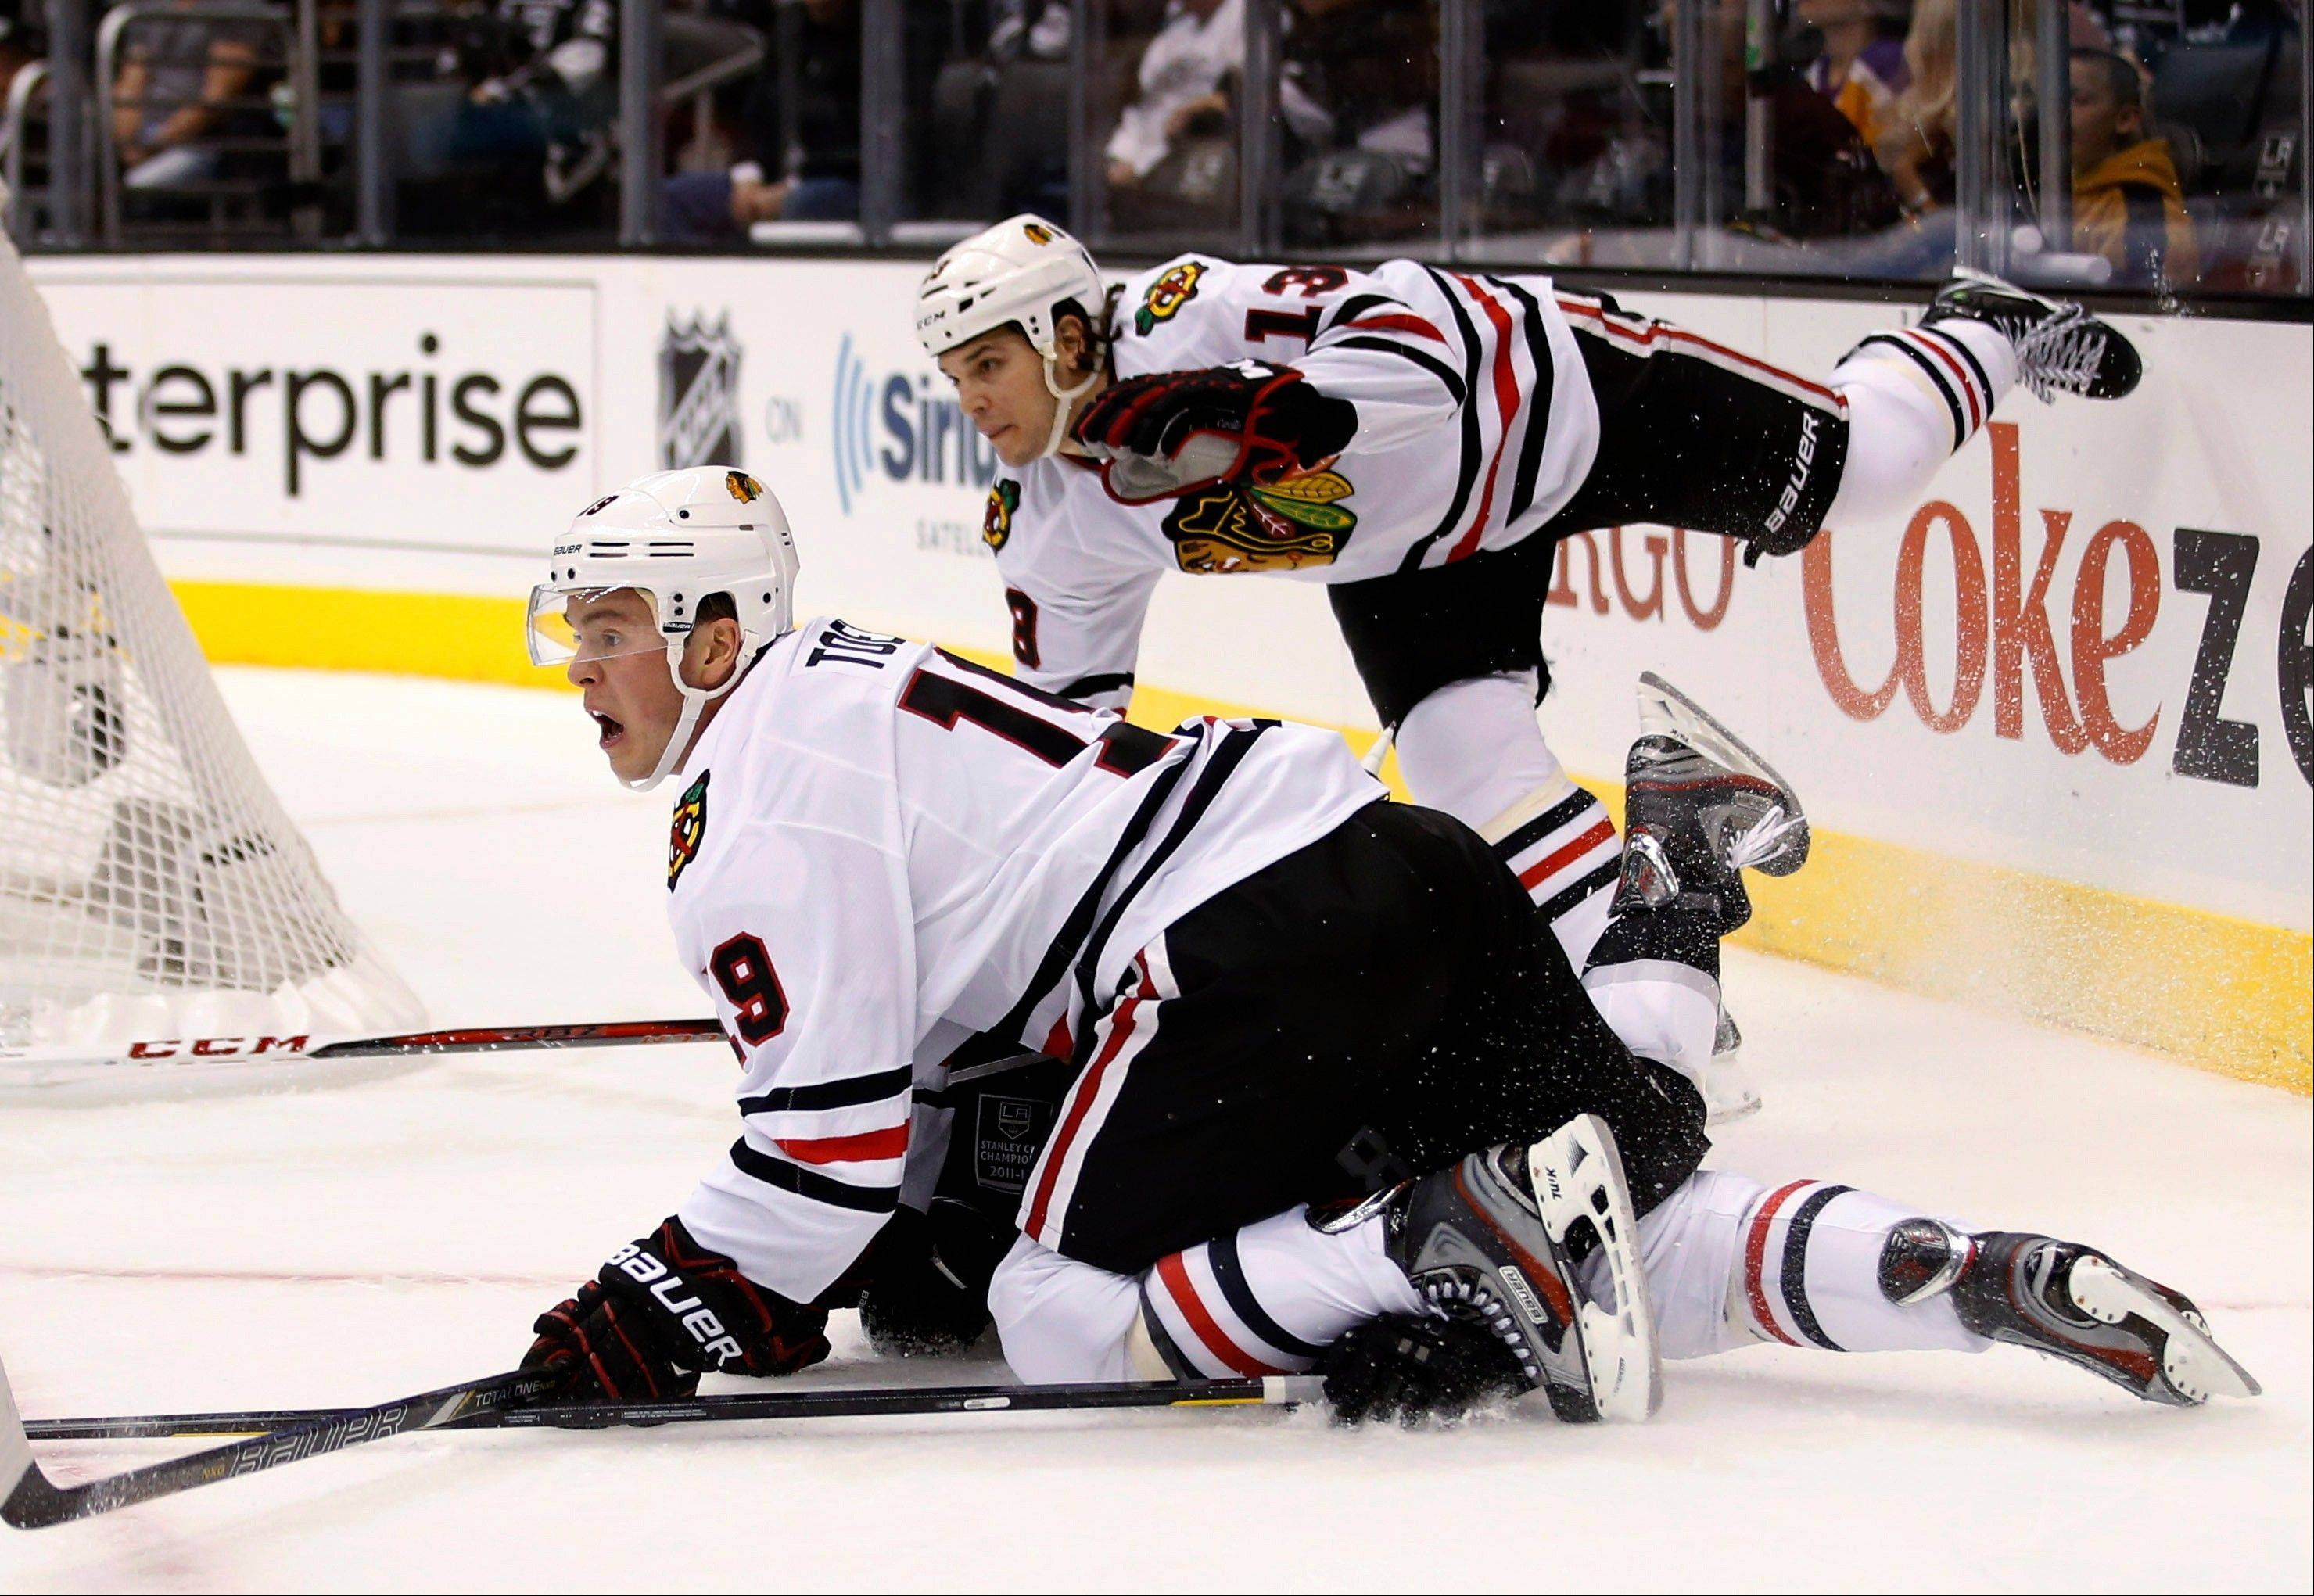 Los Angeles Kings� Drew Doughty is pinned by Chicago Blackhawks� Jonathan Toews (19) during the first period in Los Angeles. The Blackhawks� Daniel Carcillo is at rear.